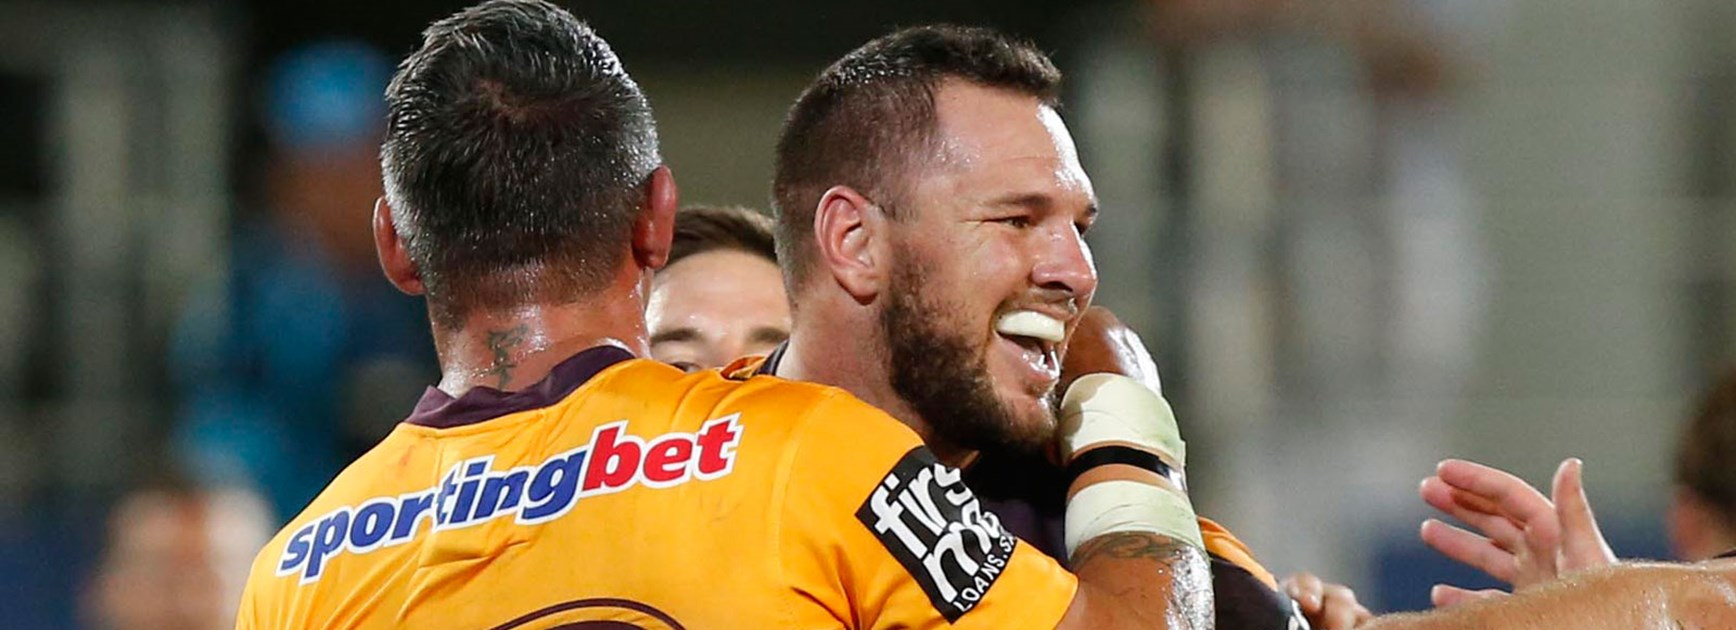 Mitchell Dodds is hoping to use his return to the NRL to earn a new contract with the Broncos.